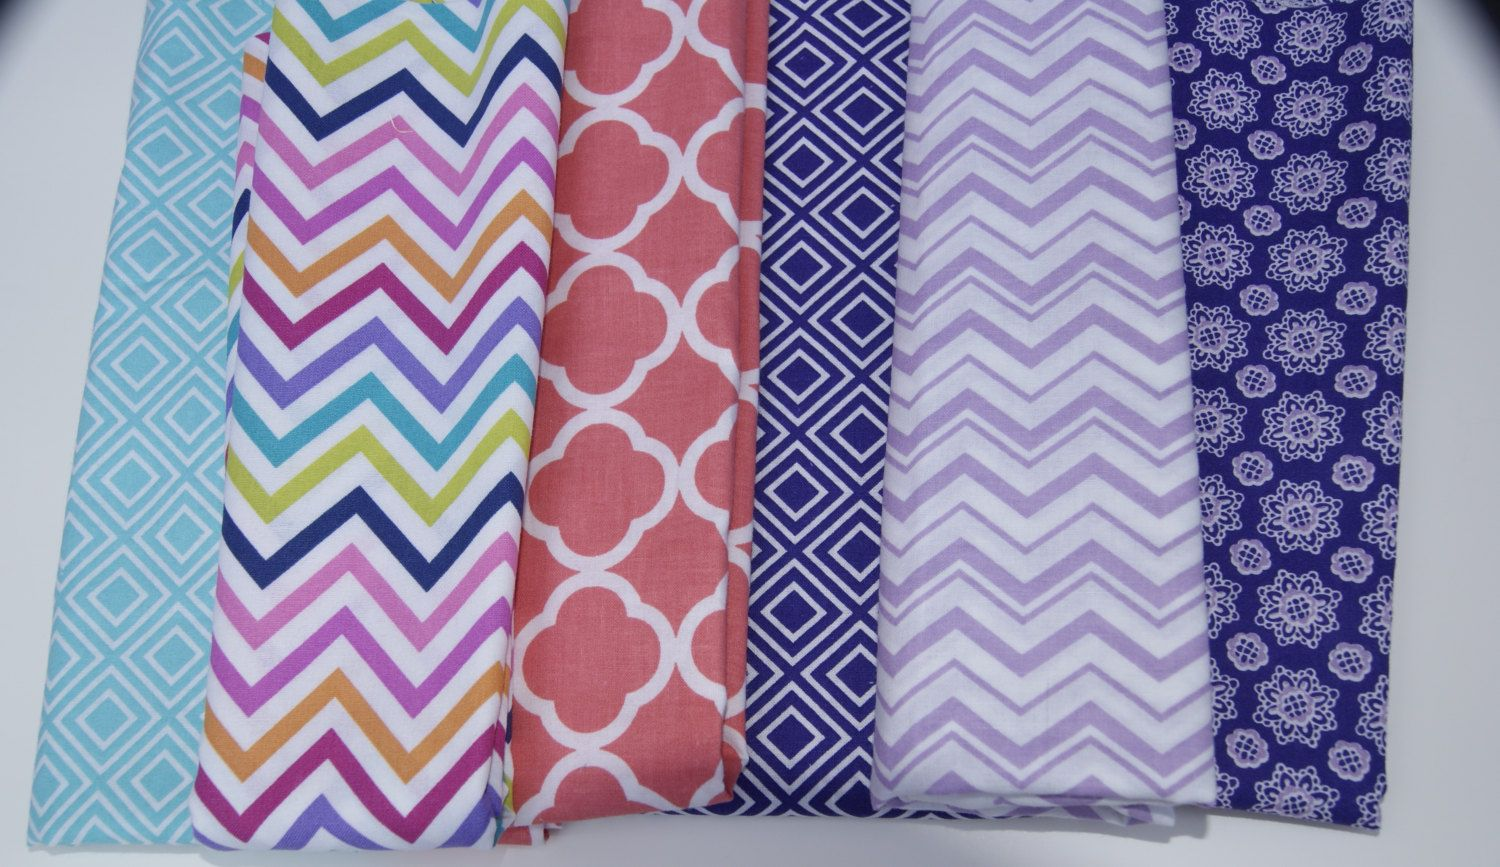 Baby Burp Cloths - Set of 2 Quilted Boutique Baby Burp Rags  - You Choose - Turquoise, Purple, Peach Quatrefoil, MultiColor Chevron by PurpleLadybugGifts on Etsy